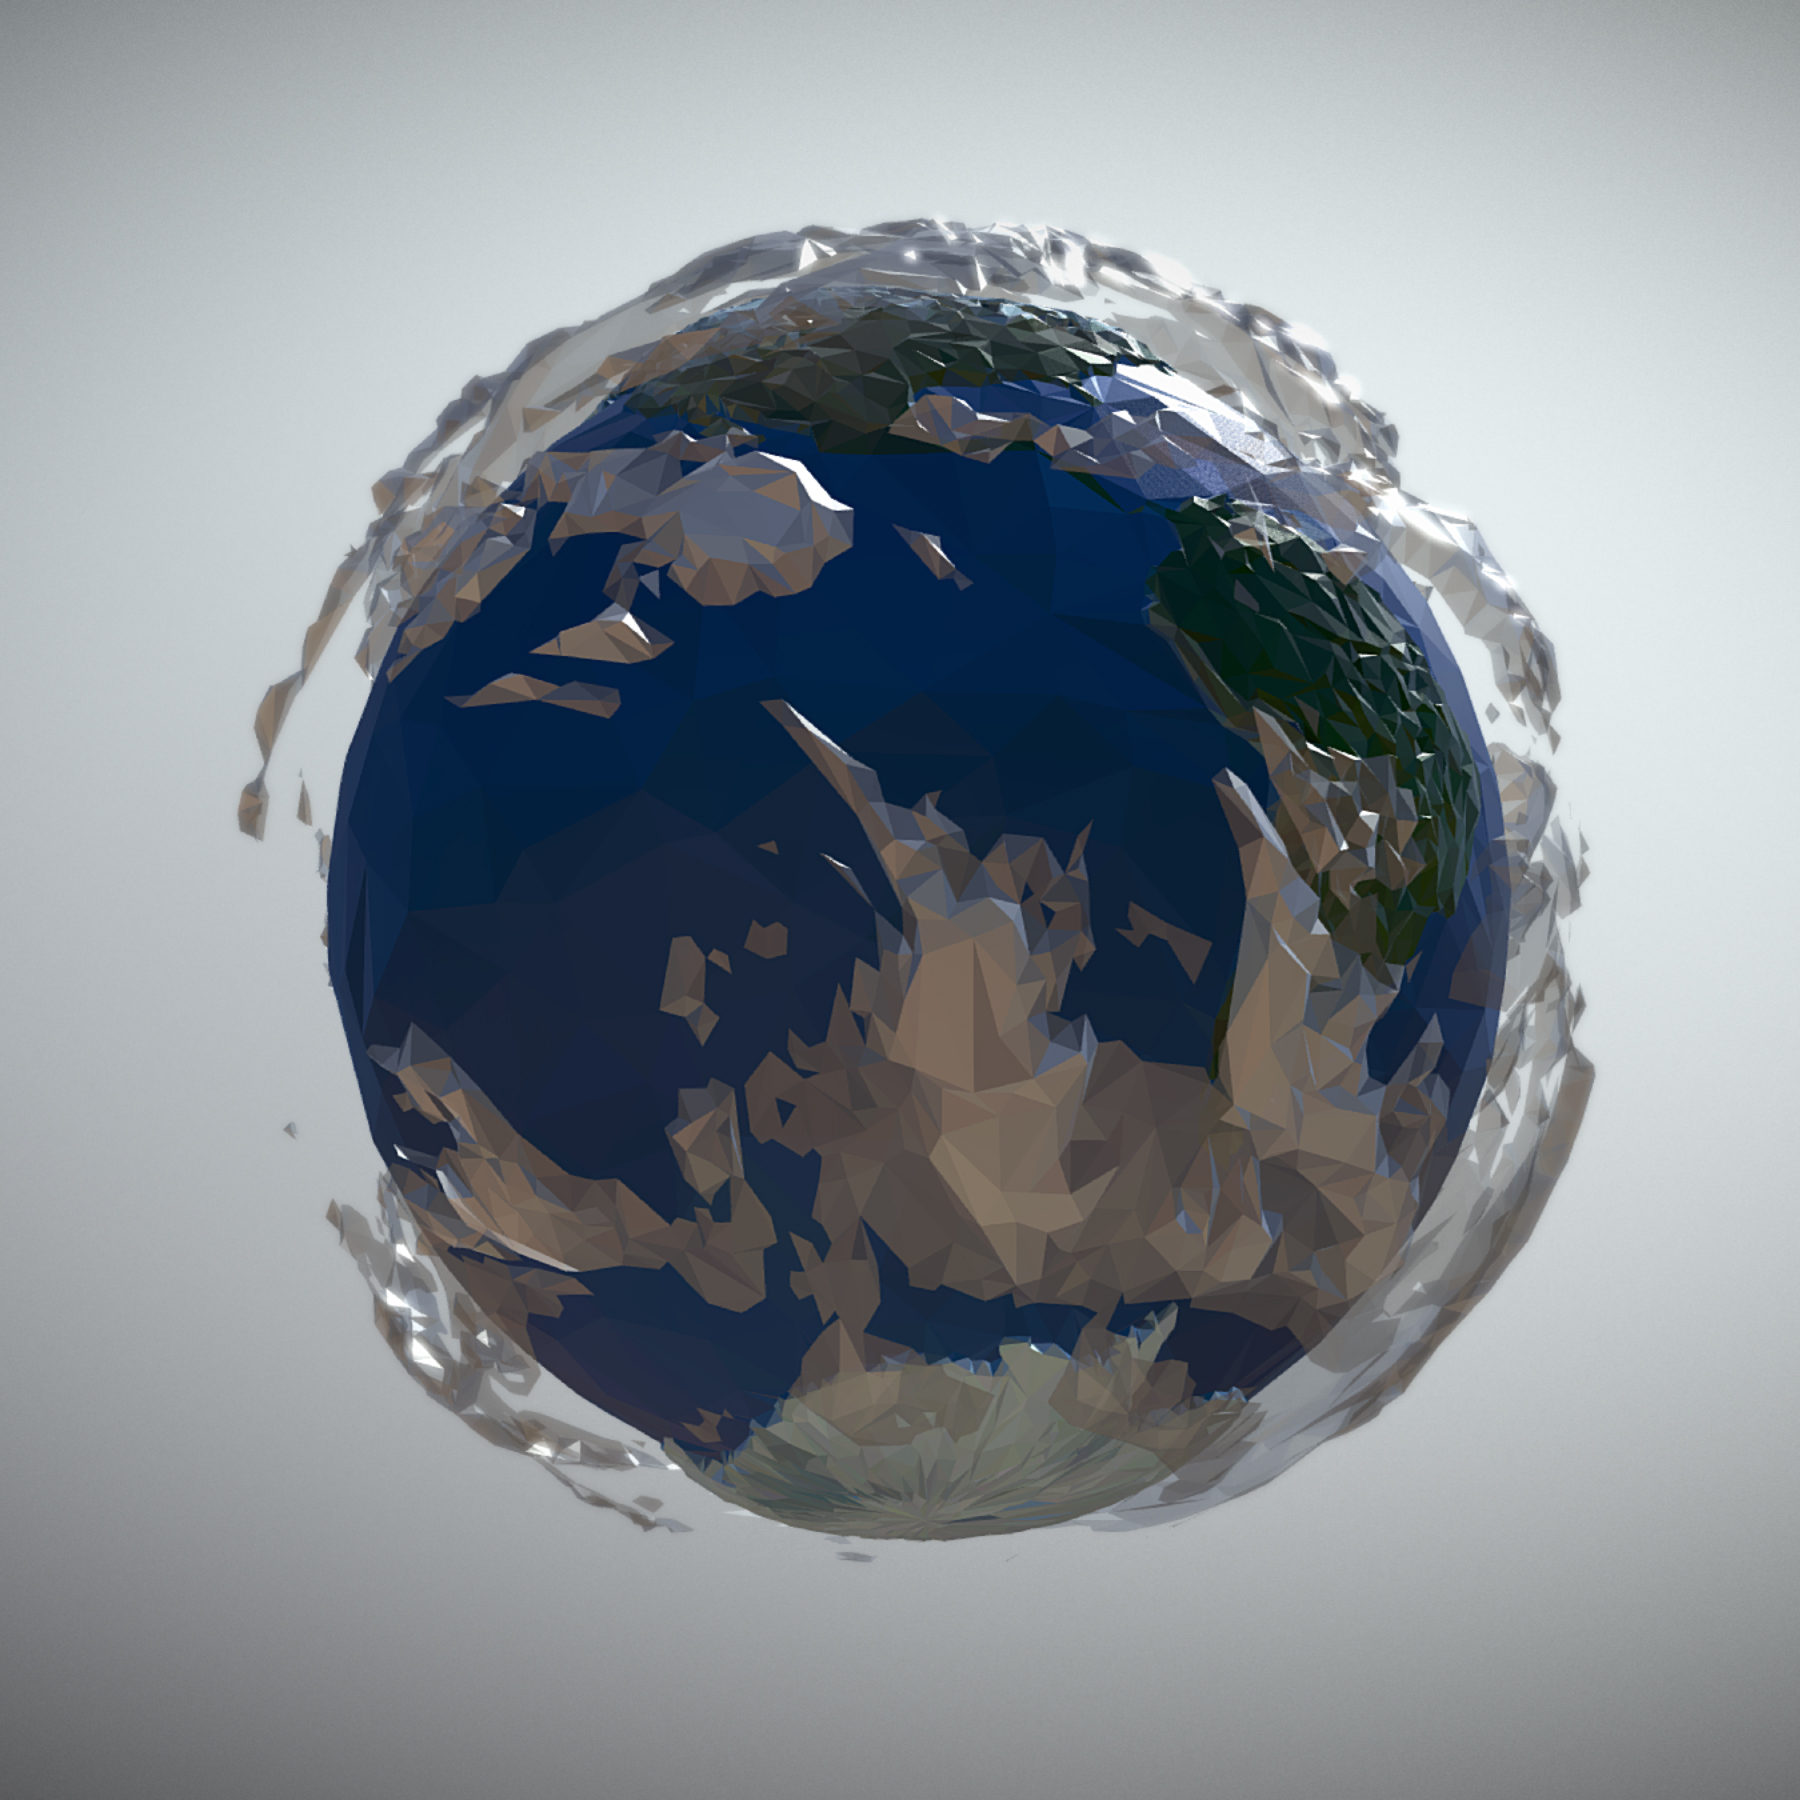 animated planet earth 3d model 3ds max fbx ma mb tga targa icb vda vst pix obj 271041